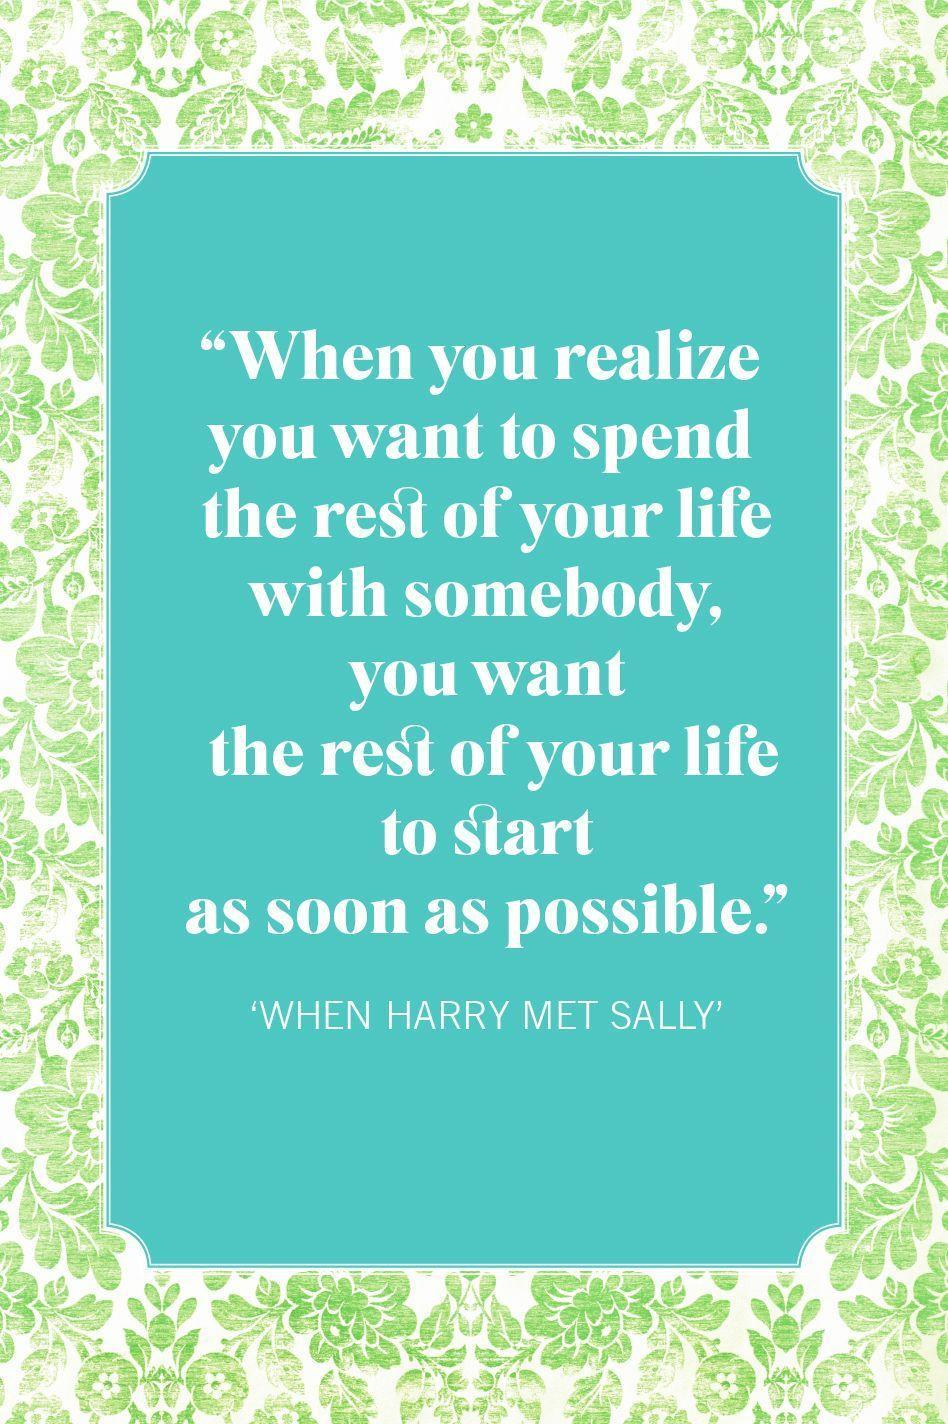 """<p>""""When you realize you want to spend the rest of your life with somebody, you want the rest of your life to start as soon as possible.""""</p>"""